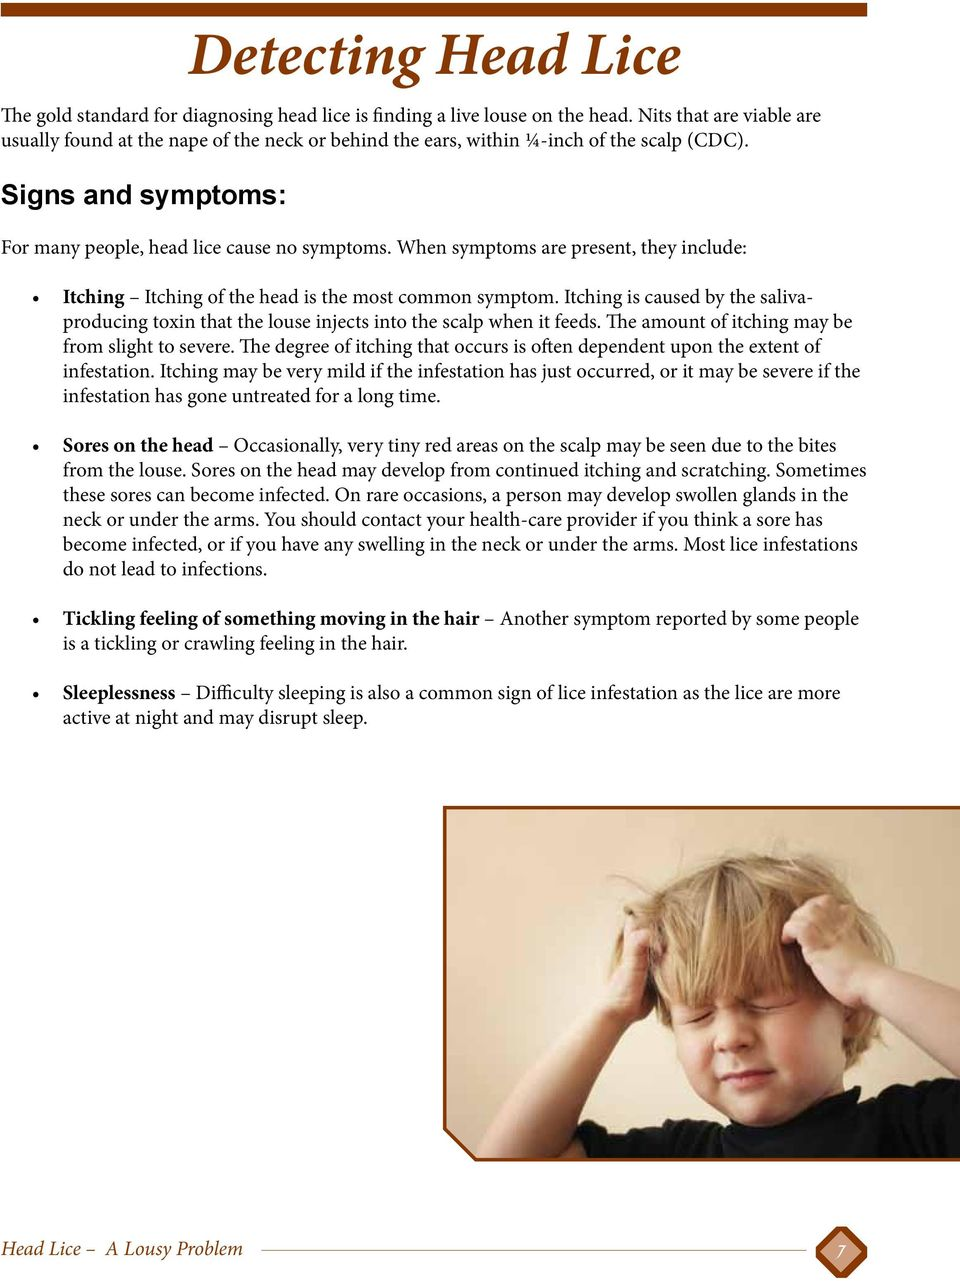 When symptoms are present, they include: Itching Itching of the head is the most common symptom. Itching is caused by the salivaproducing toxin that the louse injects into the scalp when it feeds.